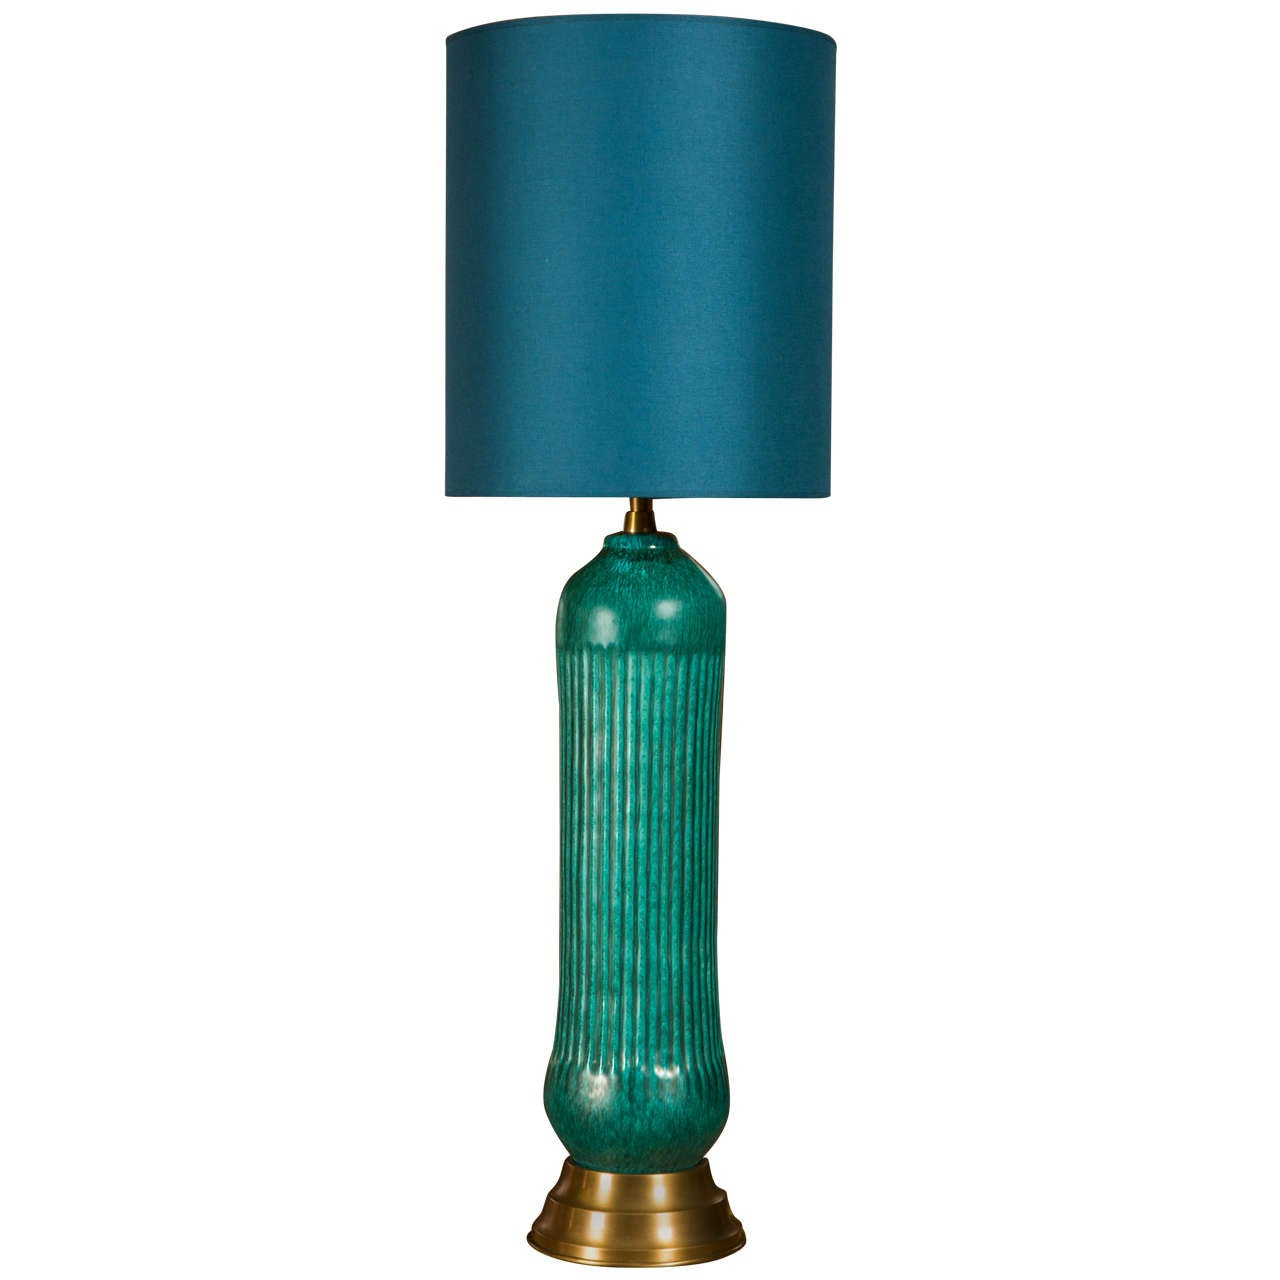 at l neck with furniture id lamps and turquoise lamp a modern century f brass table base socket of ceramic mid lighting pair